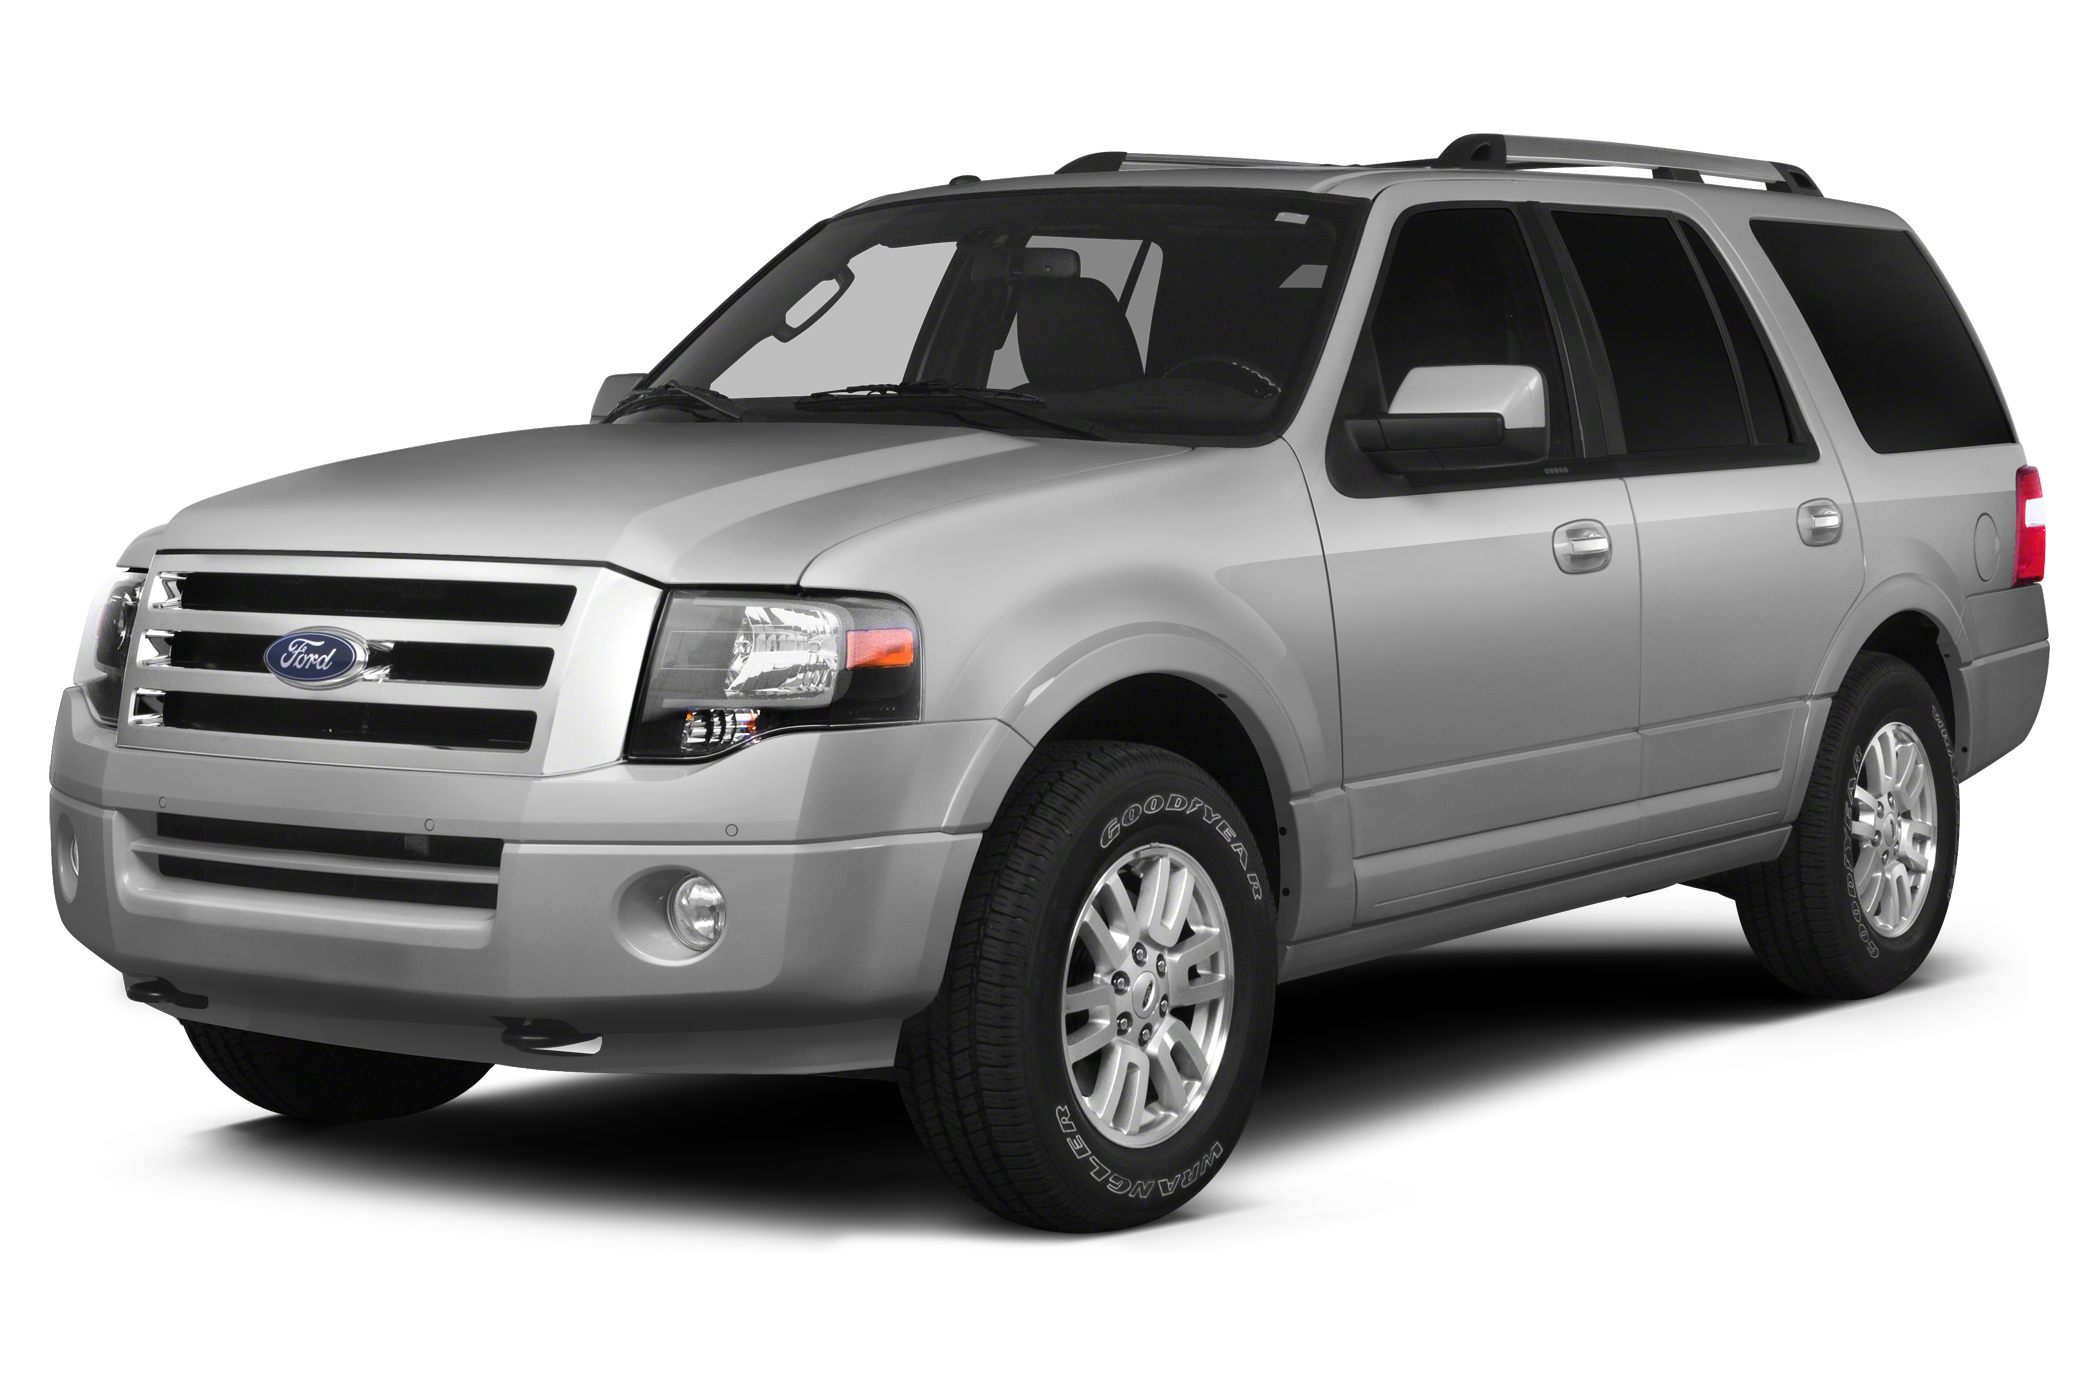 2014 Ford Expedition Limited SUV for sale in Clinton for $41,991 with 6,084 miles.